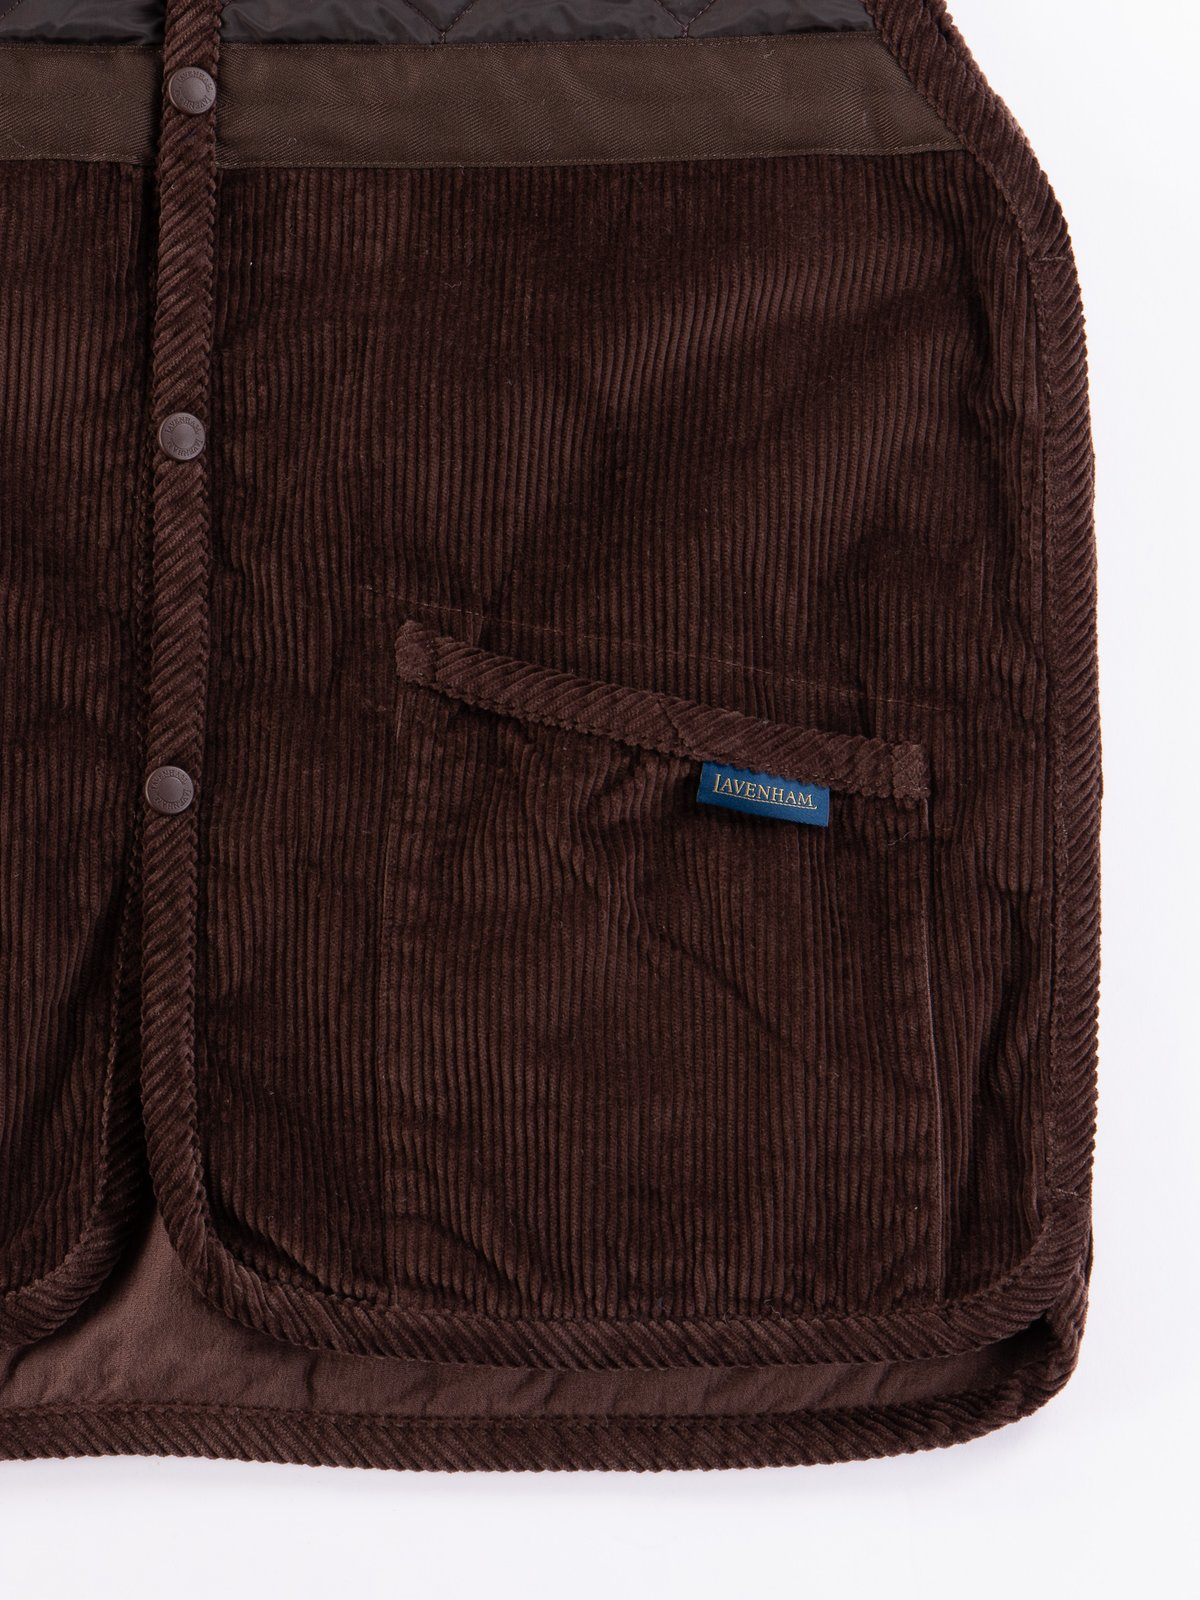 Brown Washed Cord Taped Gilet - Image 4